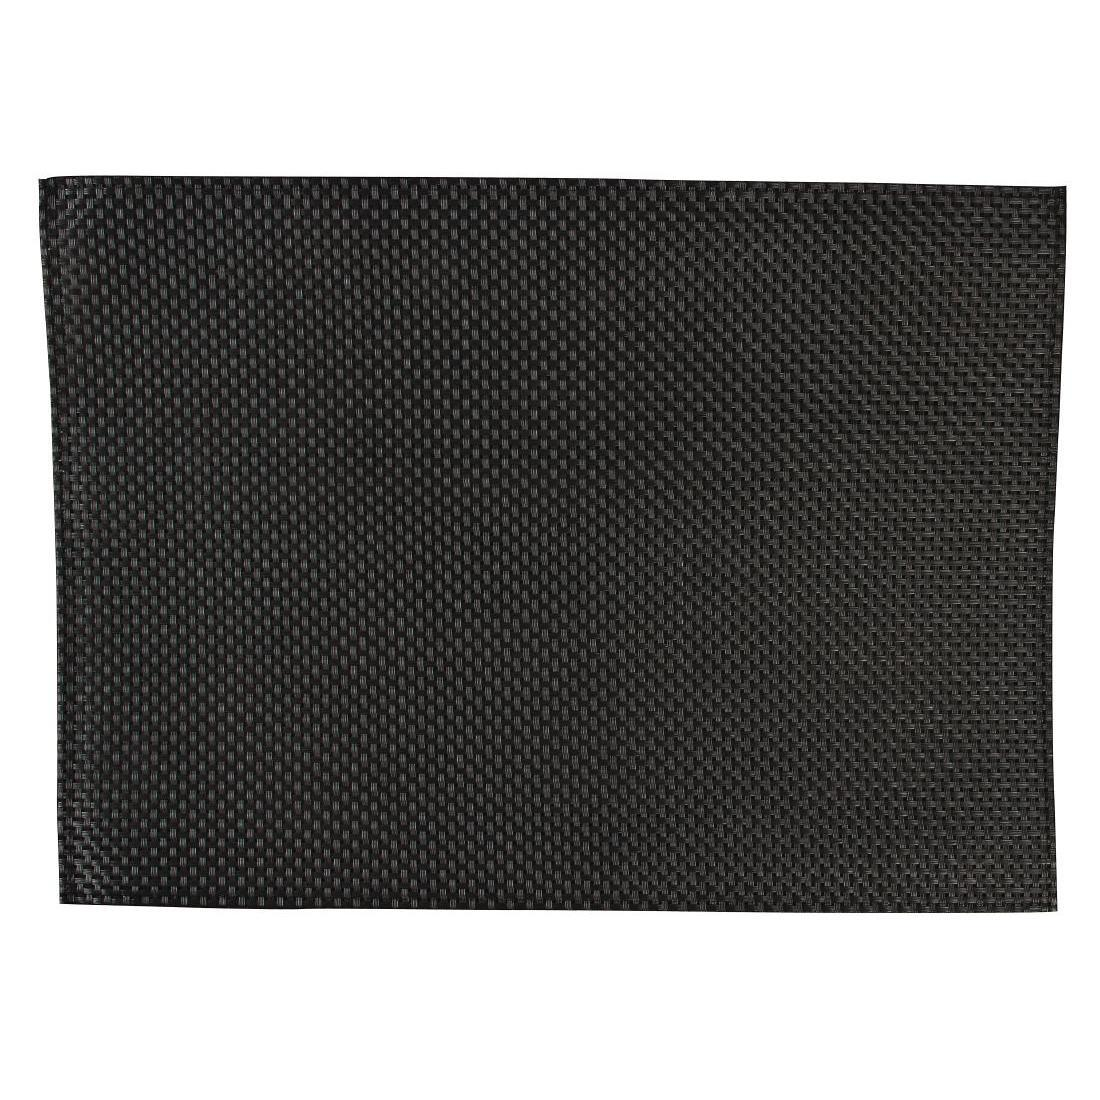 APS PVC Placemat Black - Case 6 - GJ992